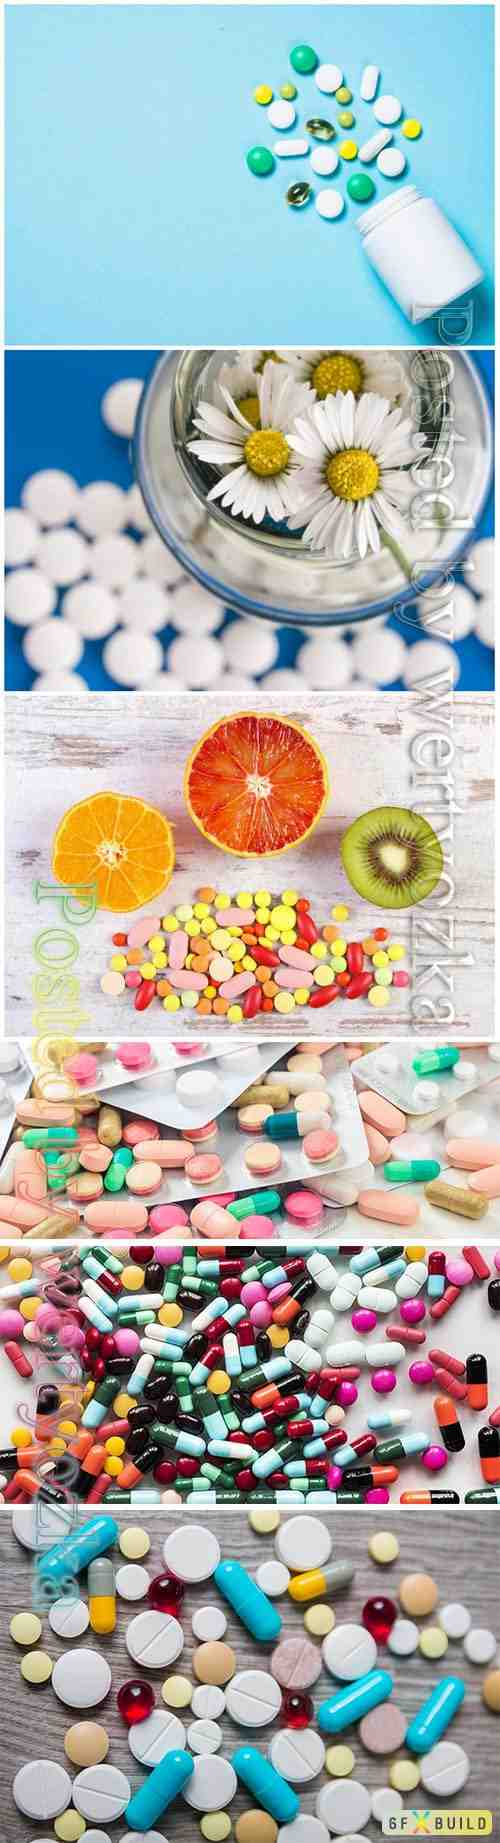 Medical pills beautiful stock photo